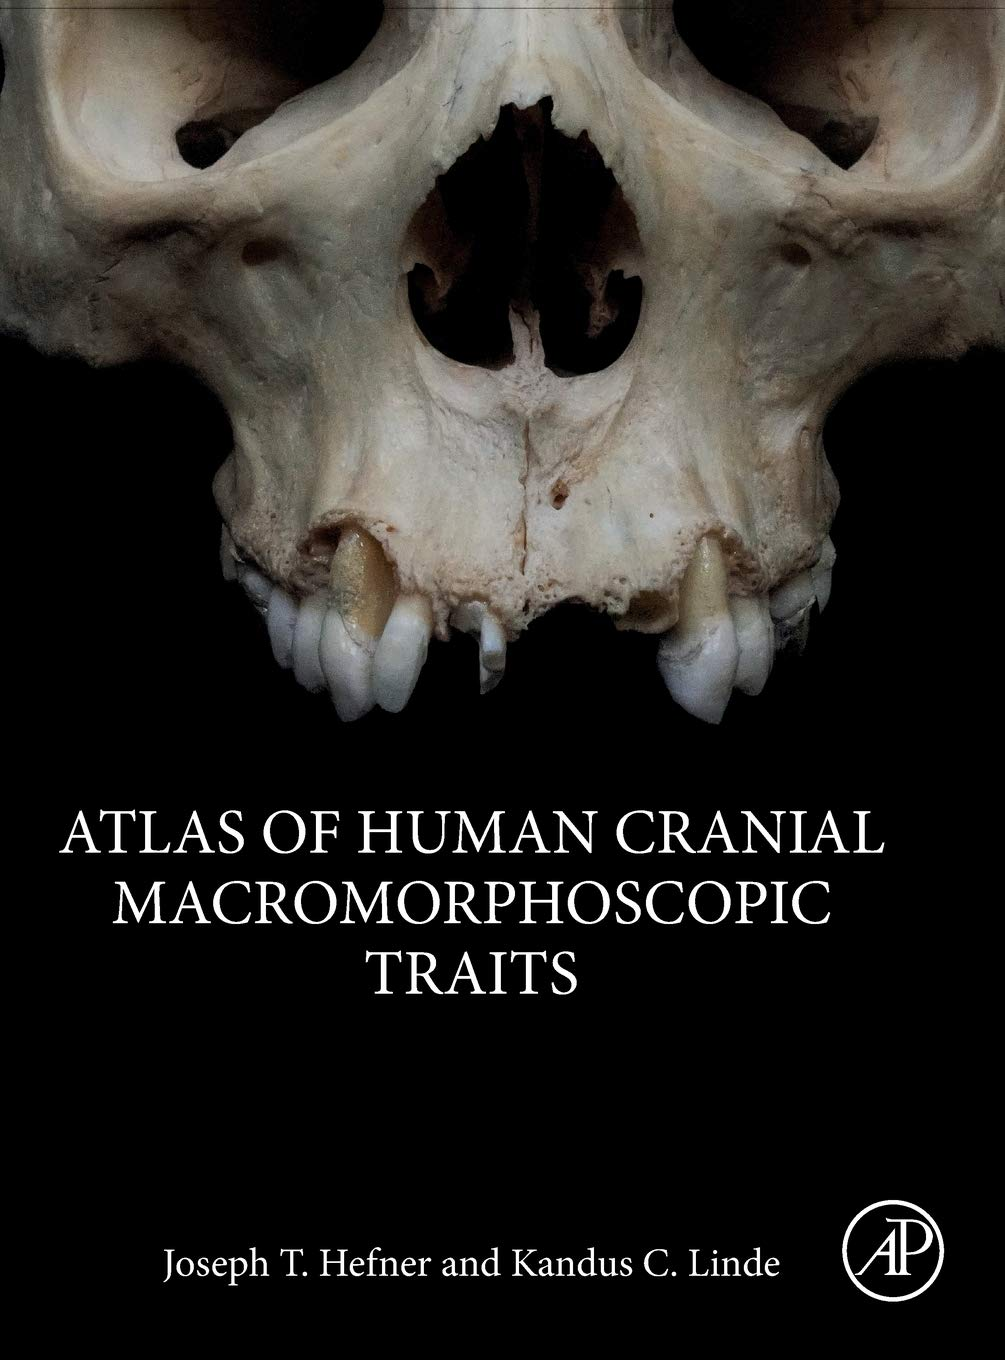 Image OfAtlas Of Human Cranial Macromorphoscopic Traits